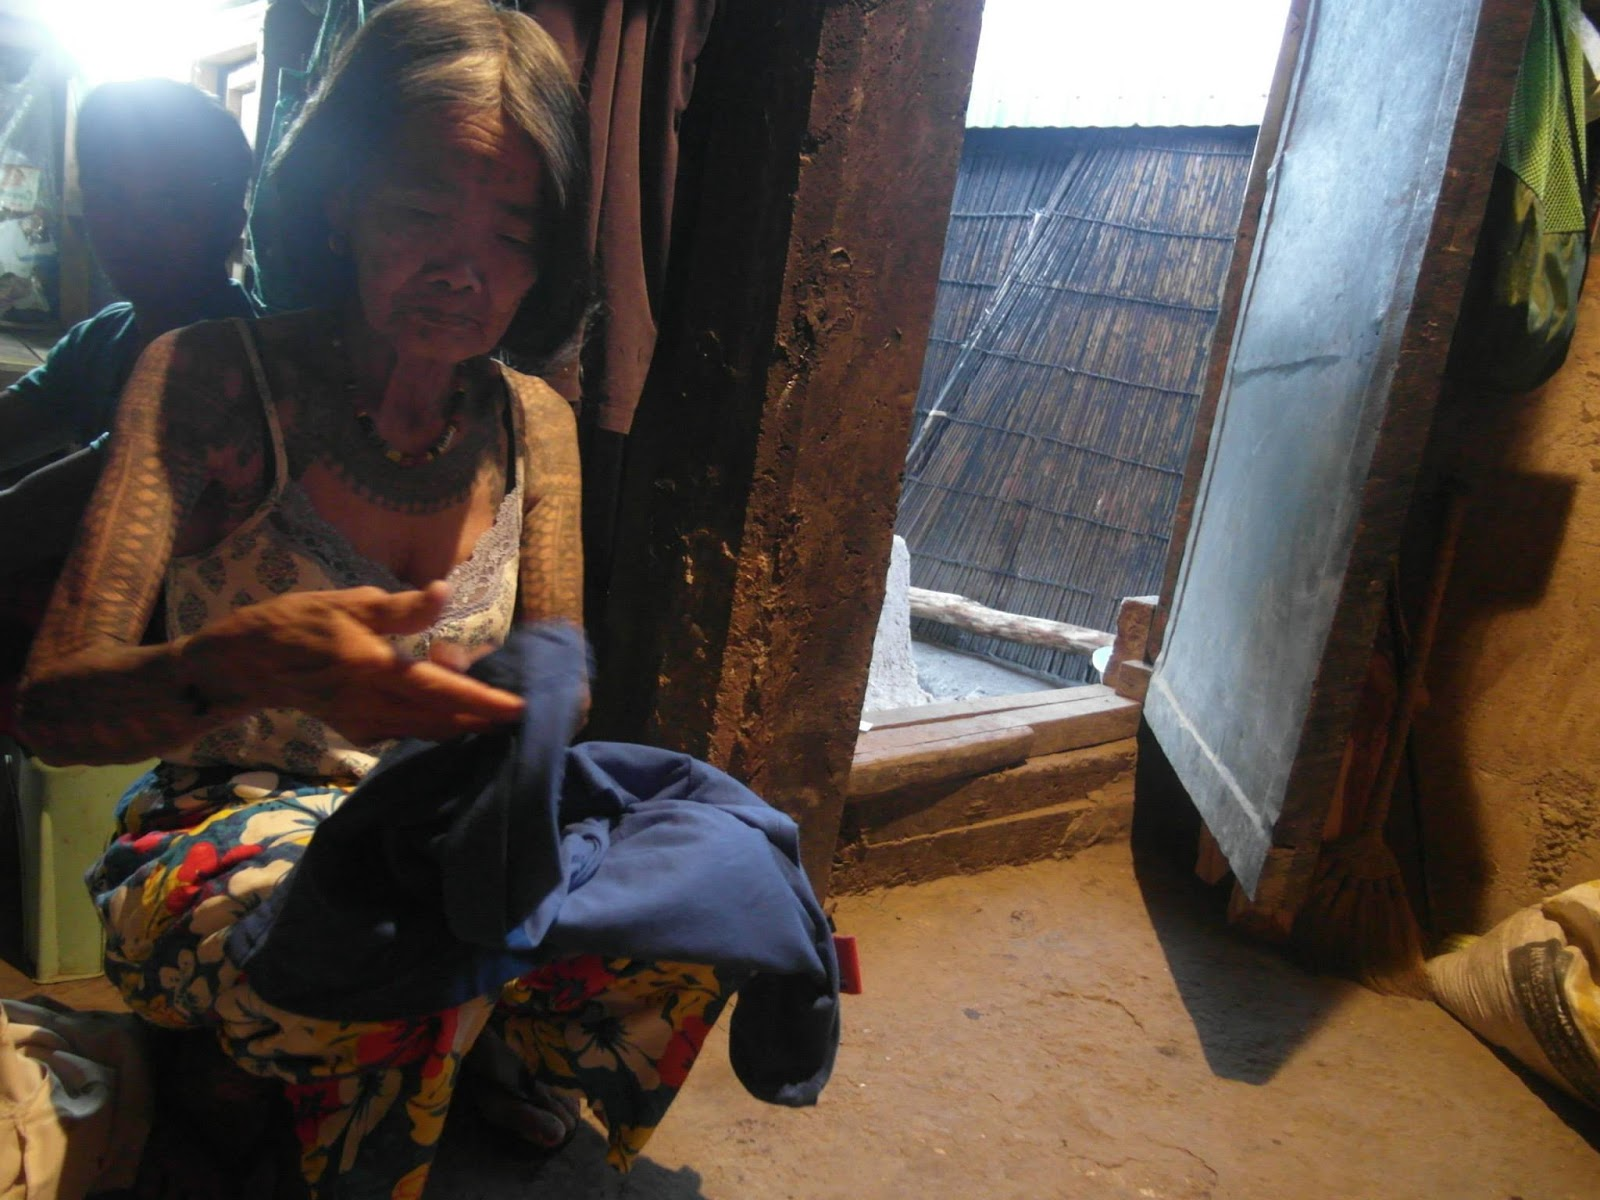 Apo Whang-Od wakes up early to prepare for a long day ahead